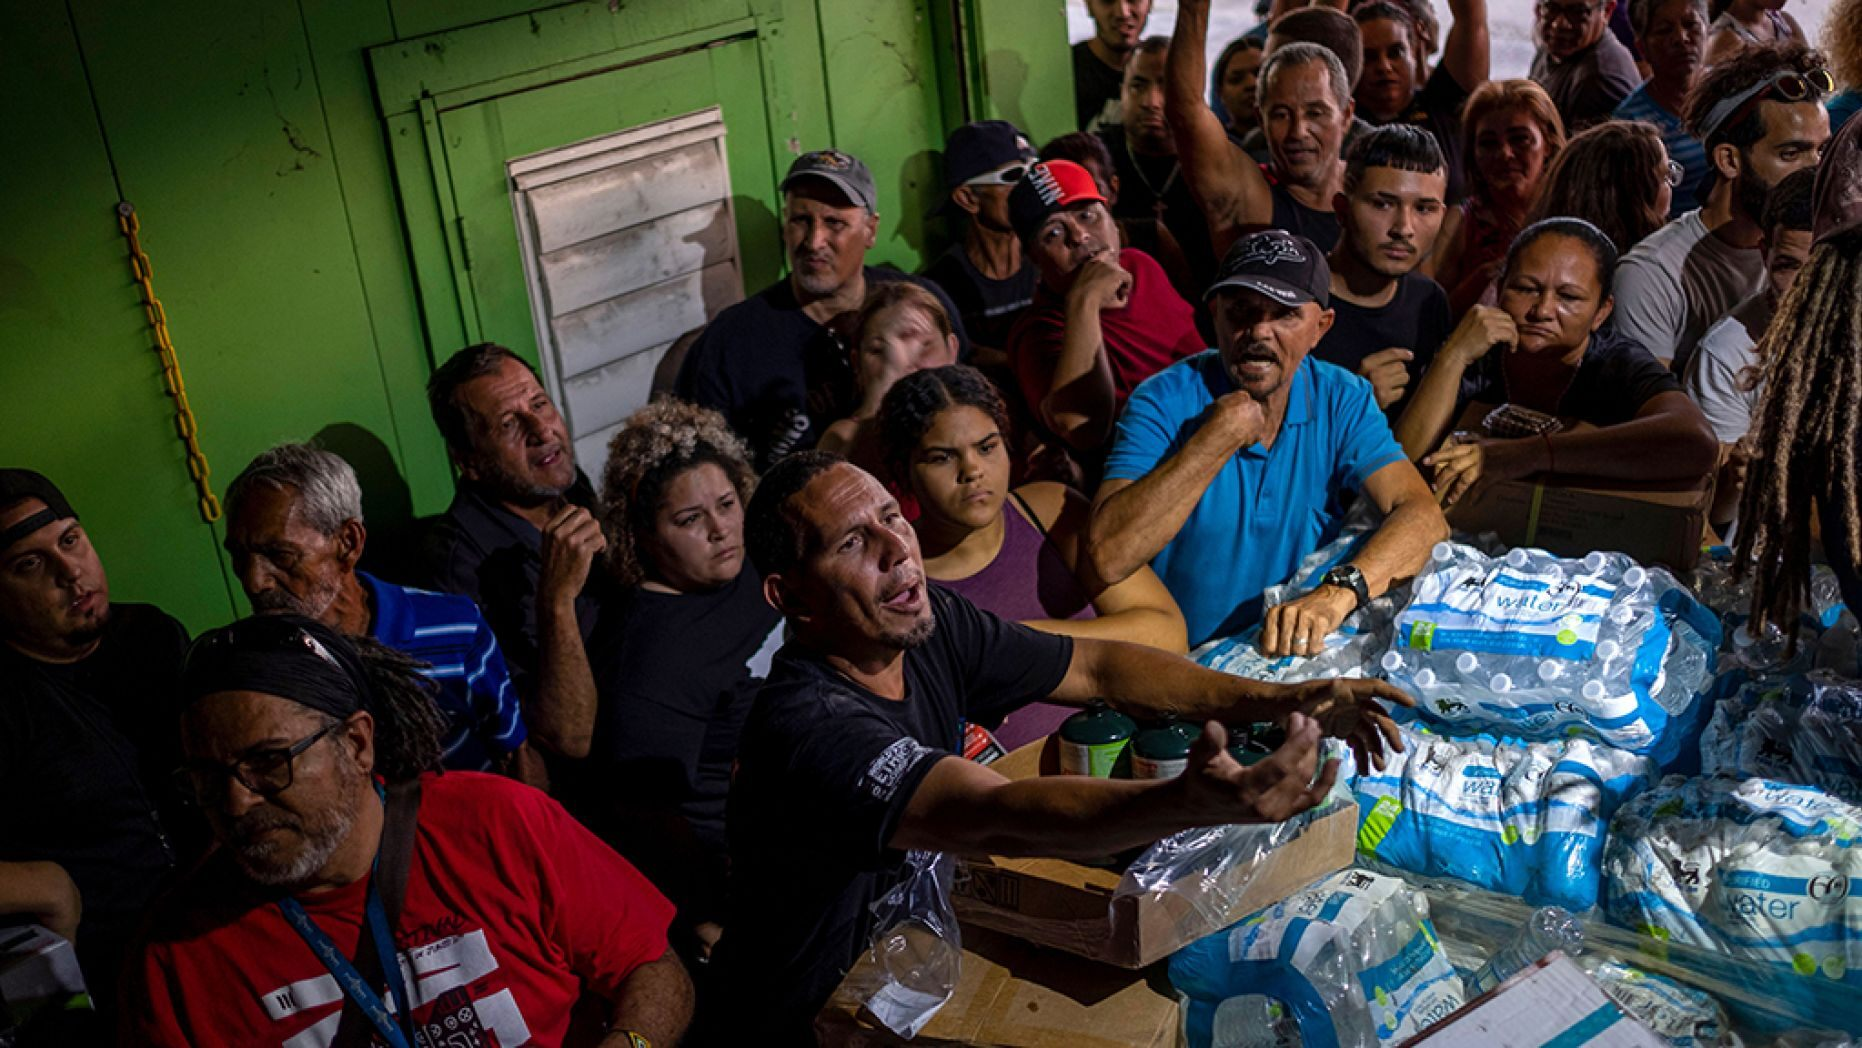 People break into a warehouse with supplies believed to have been from when Hurricane Maria struck the island in 2017 in Ponce, Puerto Rico on Jan. 18, 2020, after a powerful earthquake hit the island.